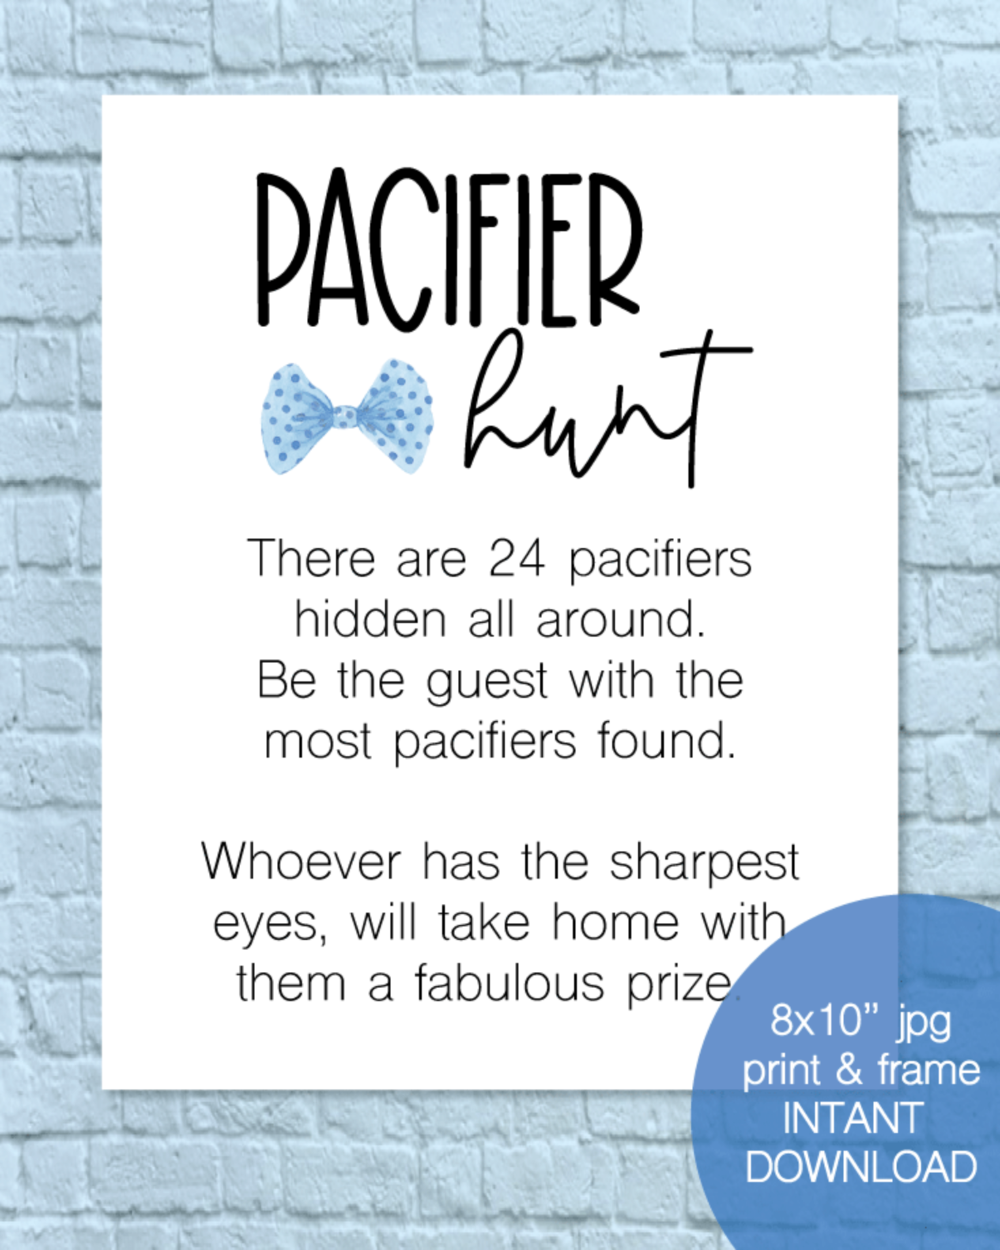 Printable Pacifier Hunt Baby Shower Game Sign - Bow Tie, Little Man Theme - 8x10